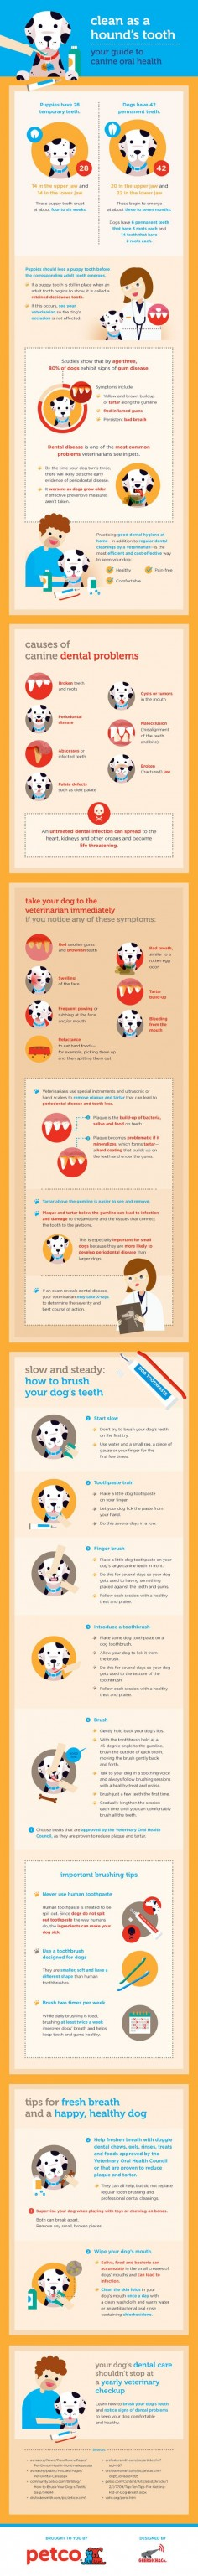 guide to canine oral health